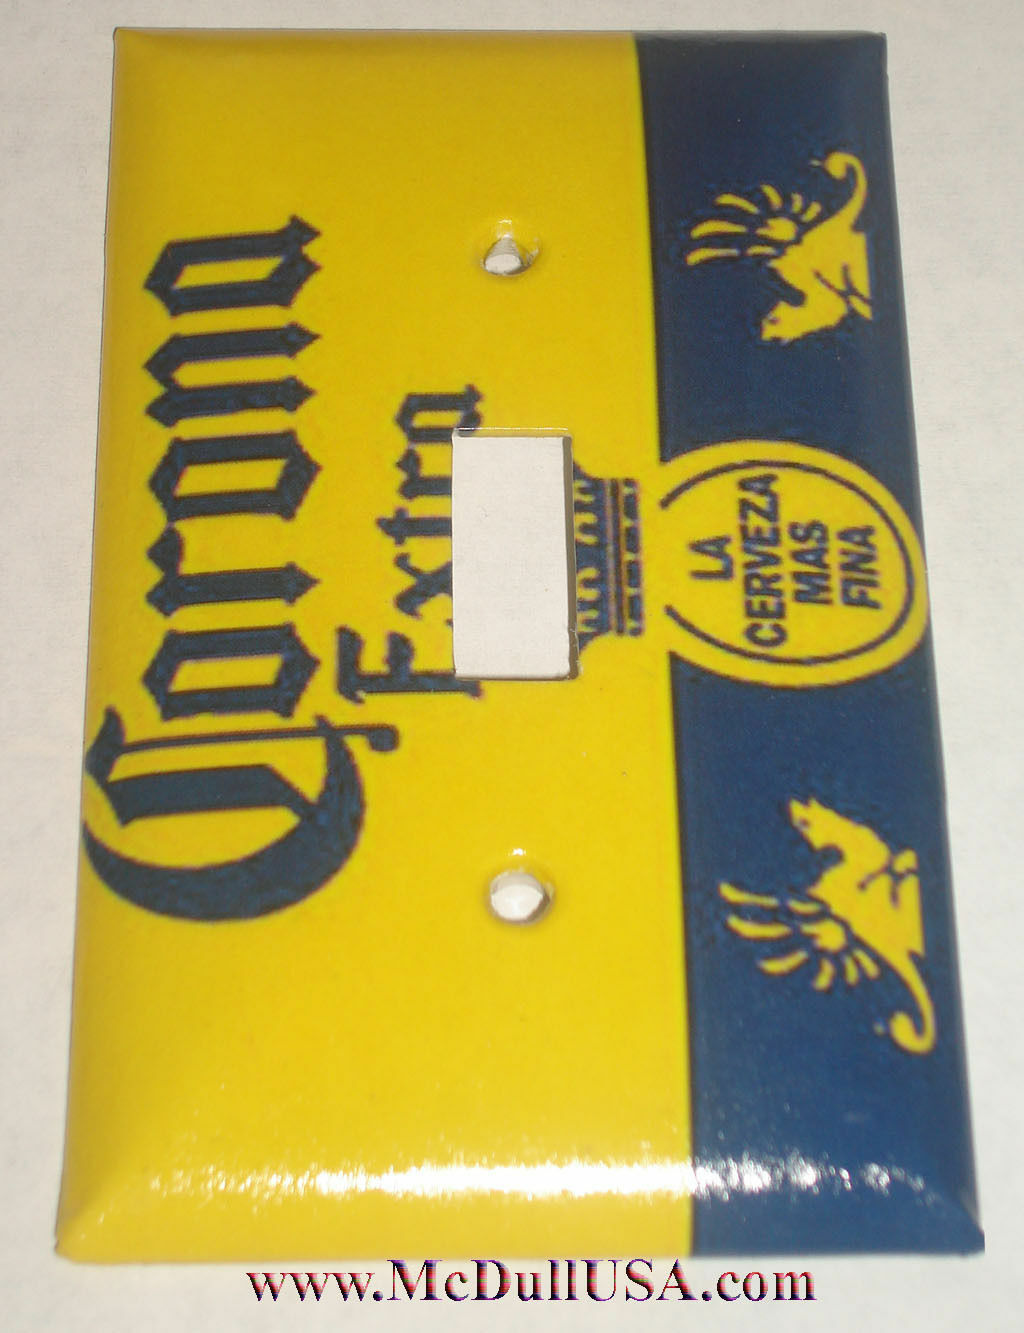 Corona Extra La Cerveza FINA Light Switch Power Outlet wall Cover Plate Decor